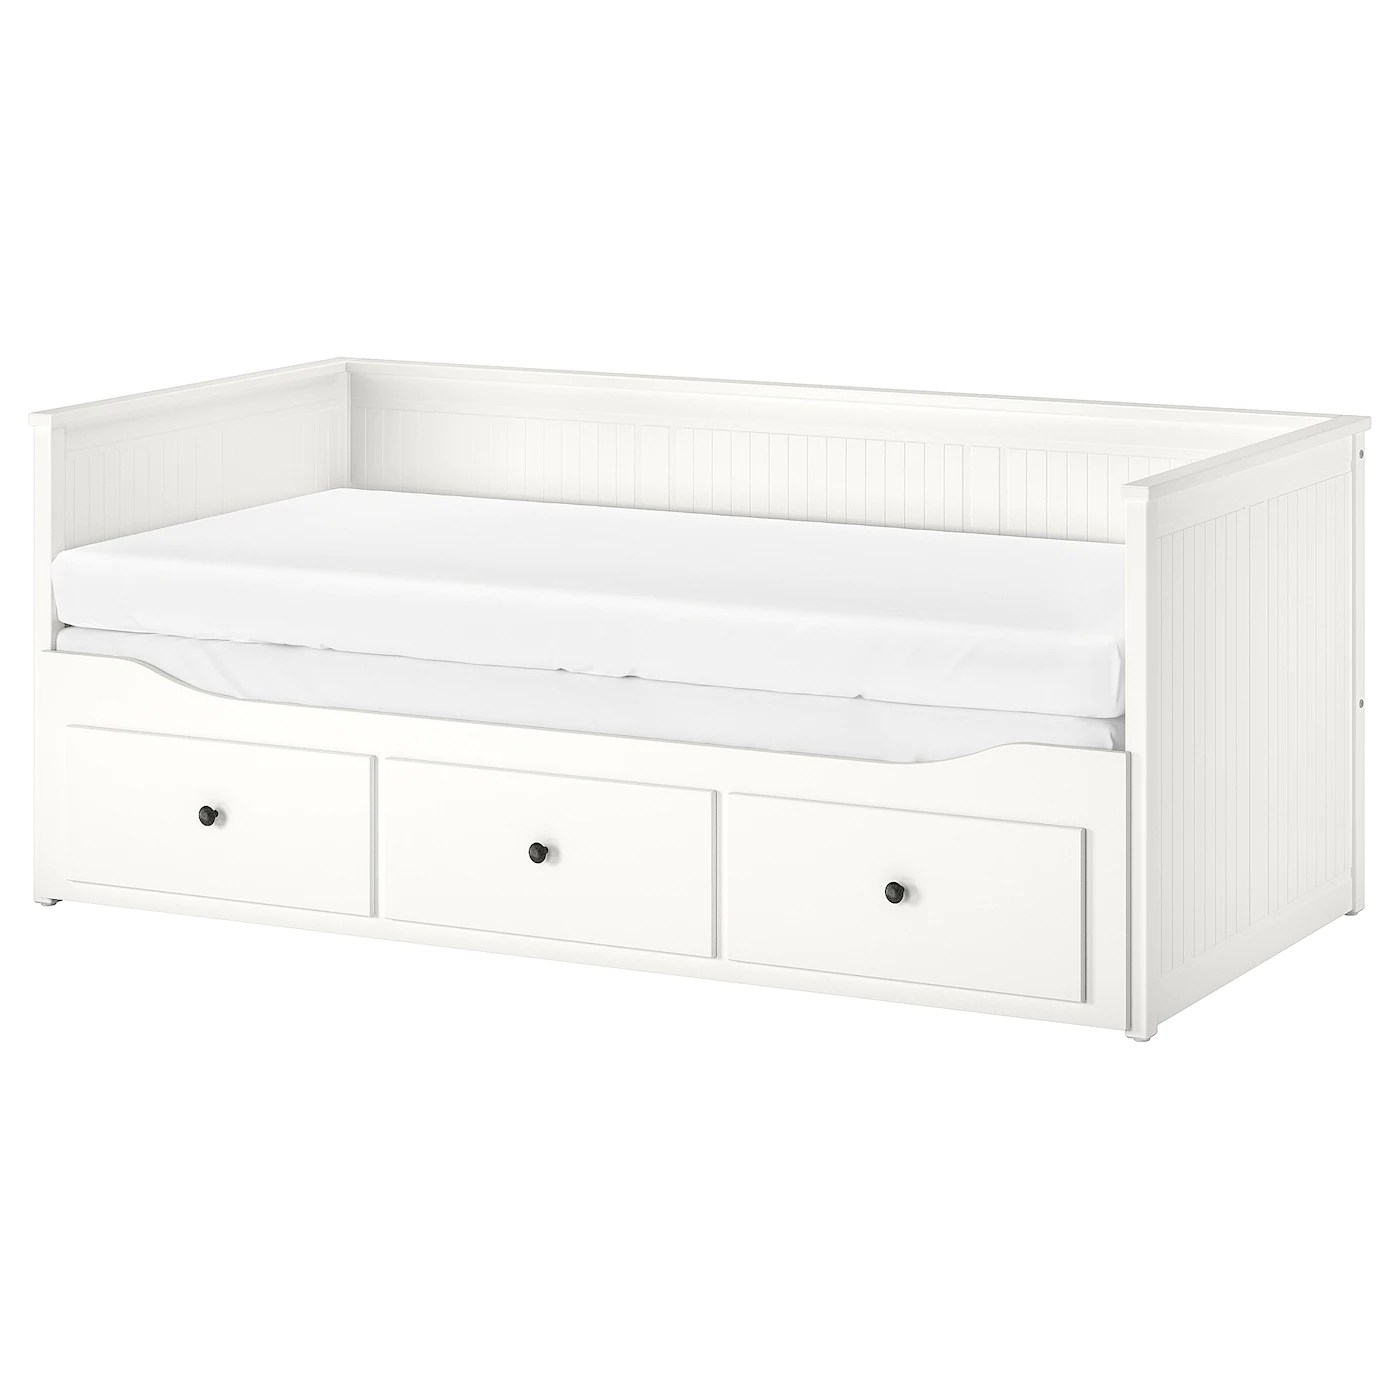 hemnes daybed frame with